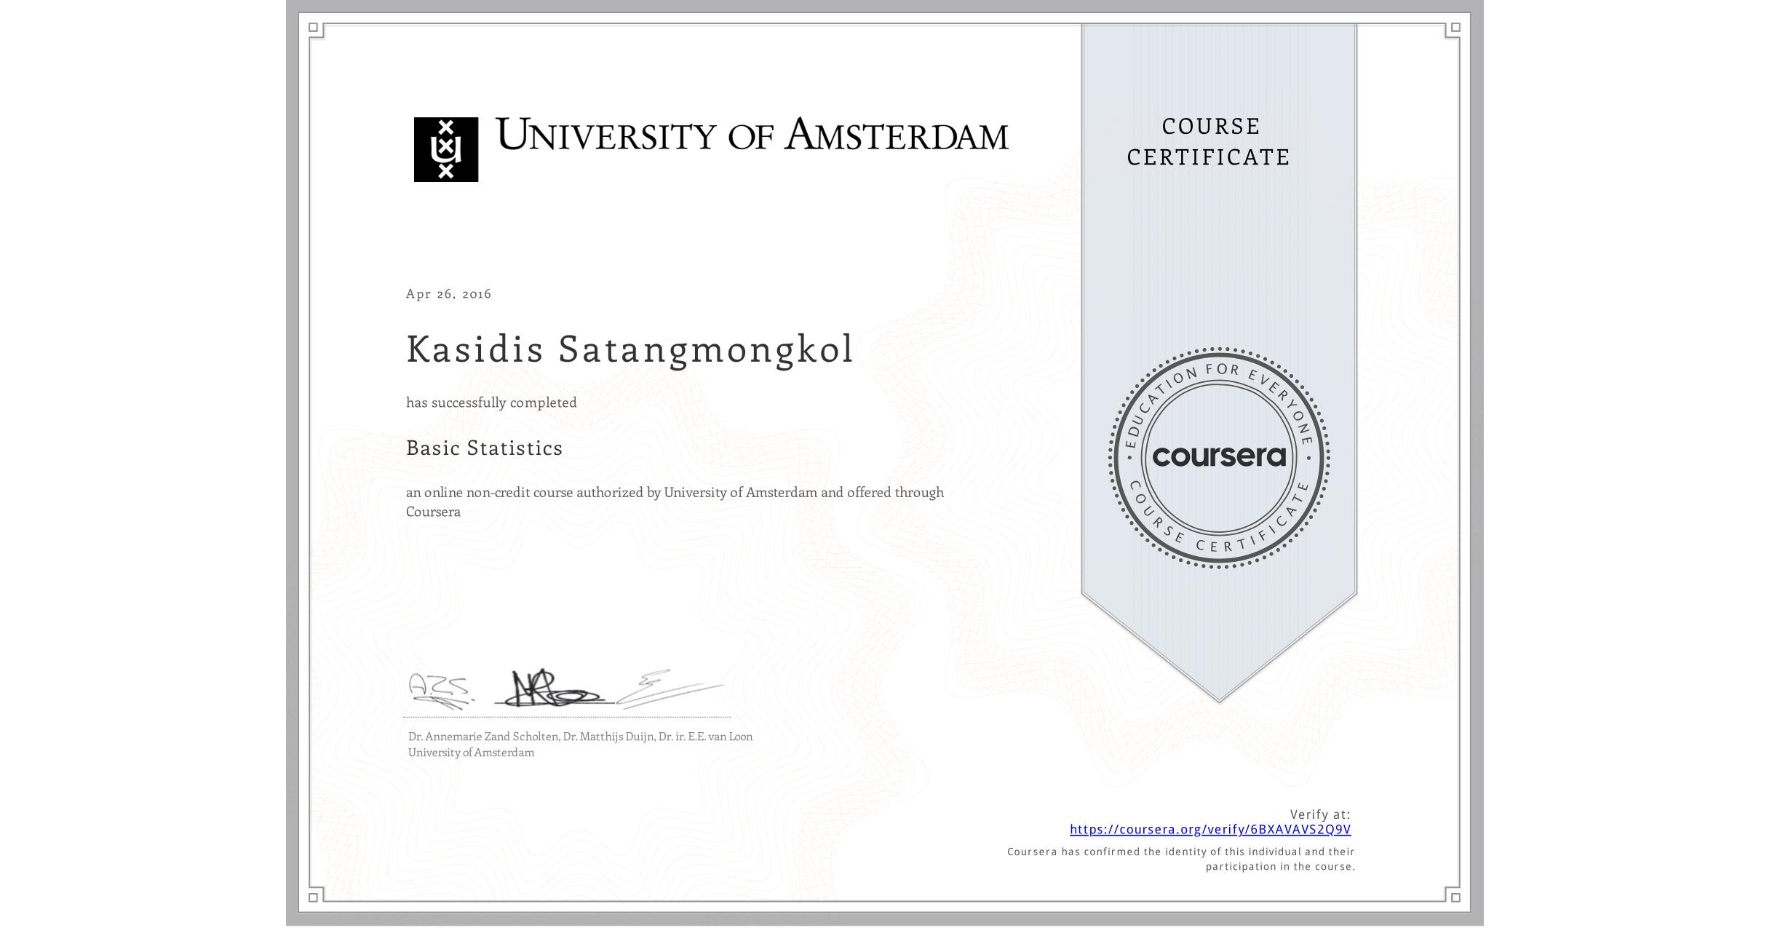 View certificate for Kasidis Satangmongkol, Basic Statistics, an online non-credit course authorized by University of Amsterdam and offered through Coursera